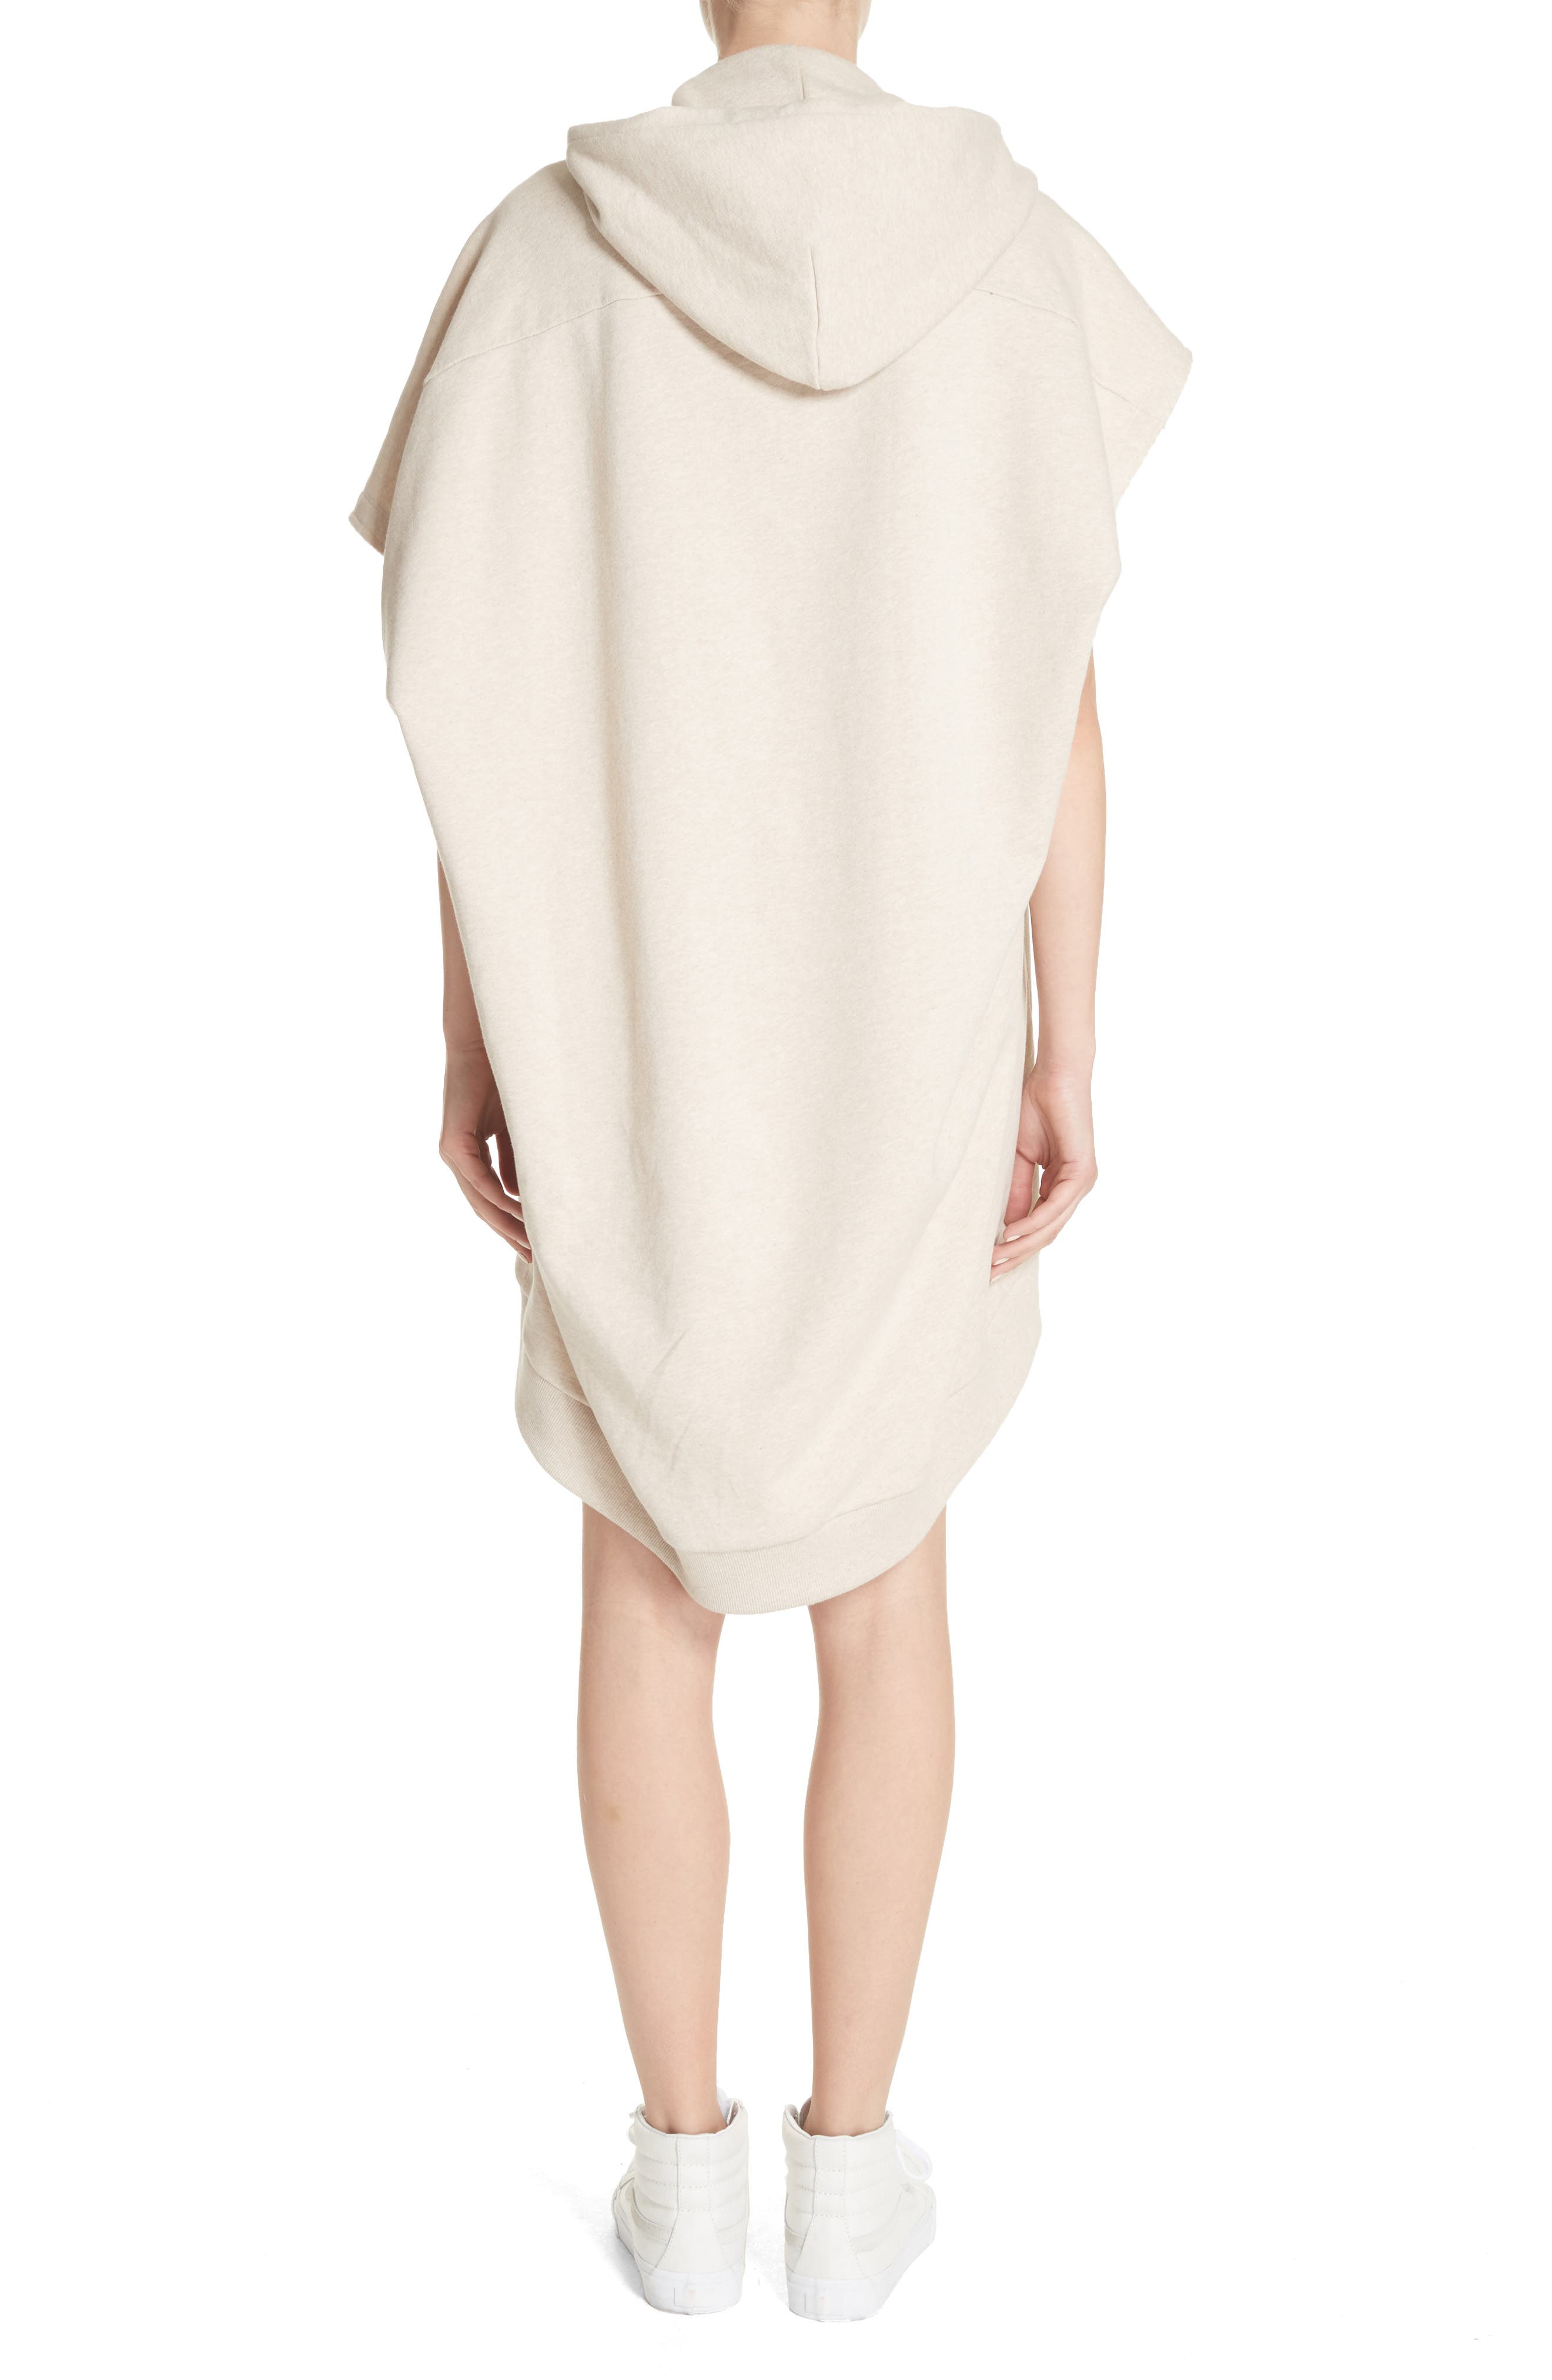 Marques'Almeida Asymmetrical Cap Sleeve Hoodie,                             Alternate thumbnail 2, color,                             Beige Melange